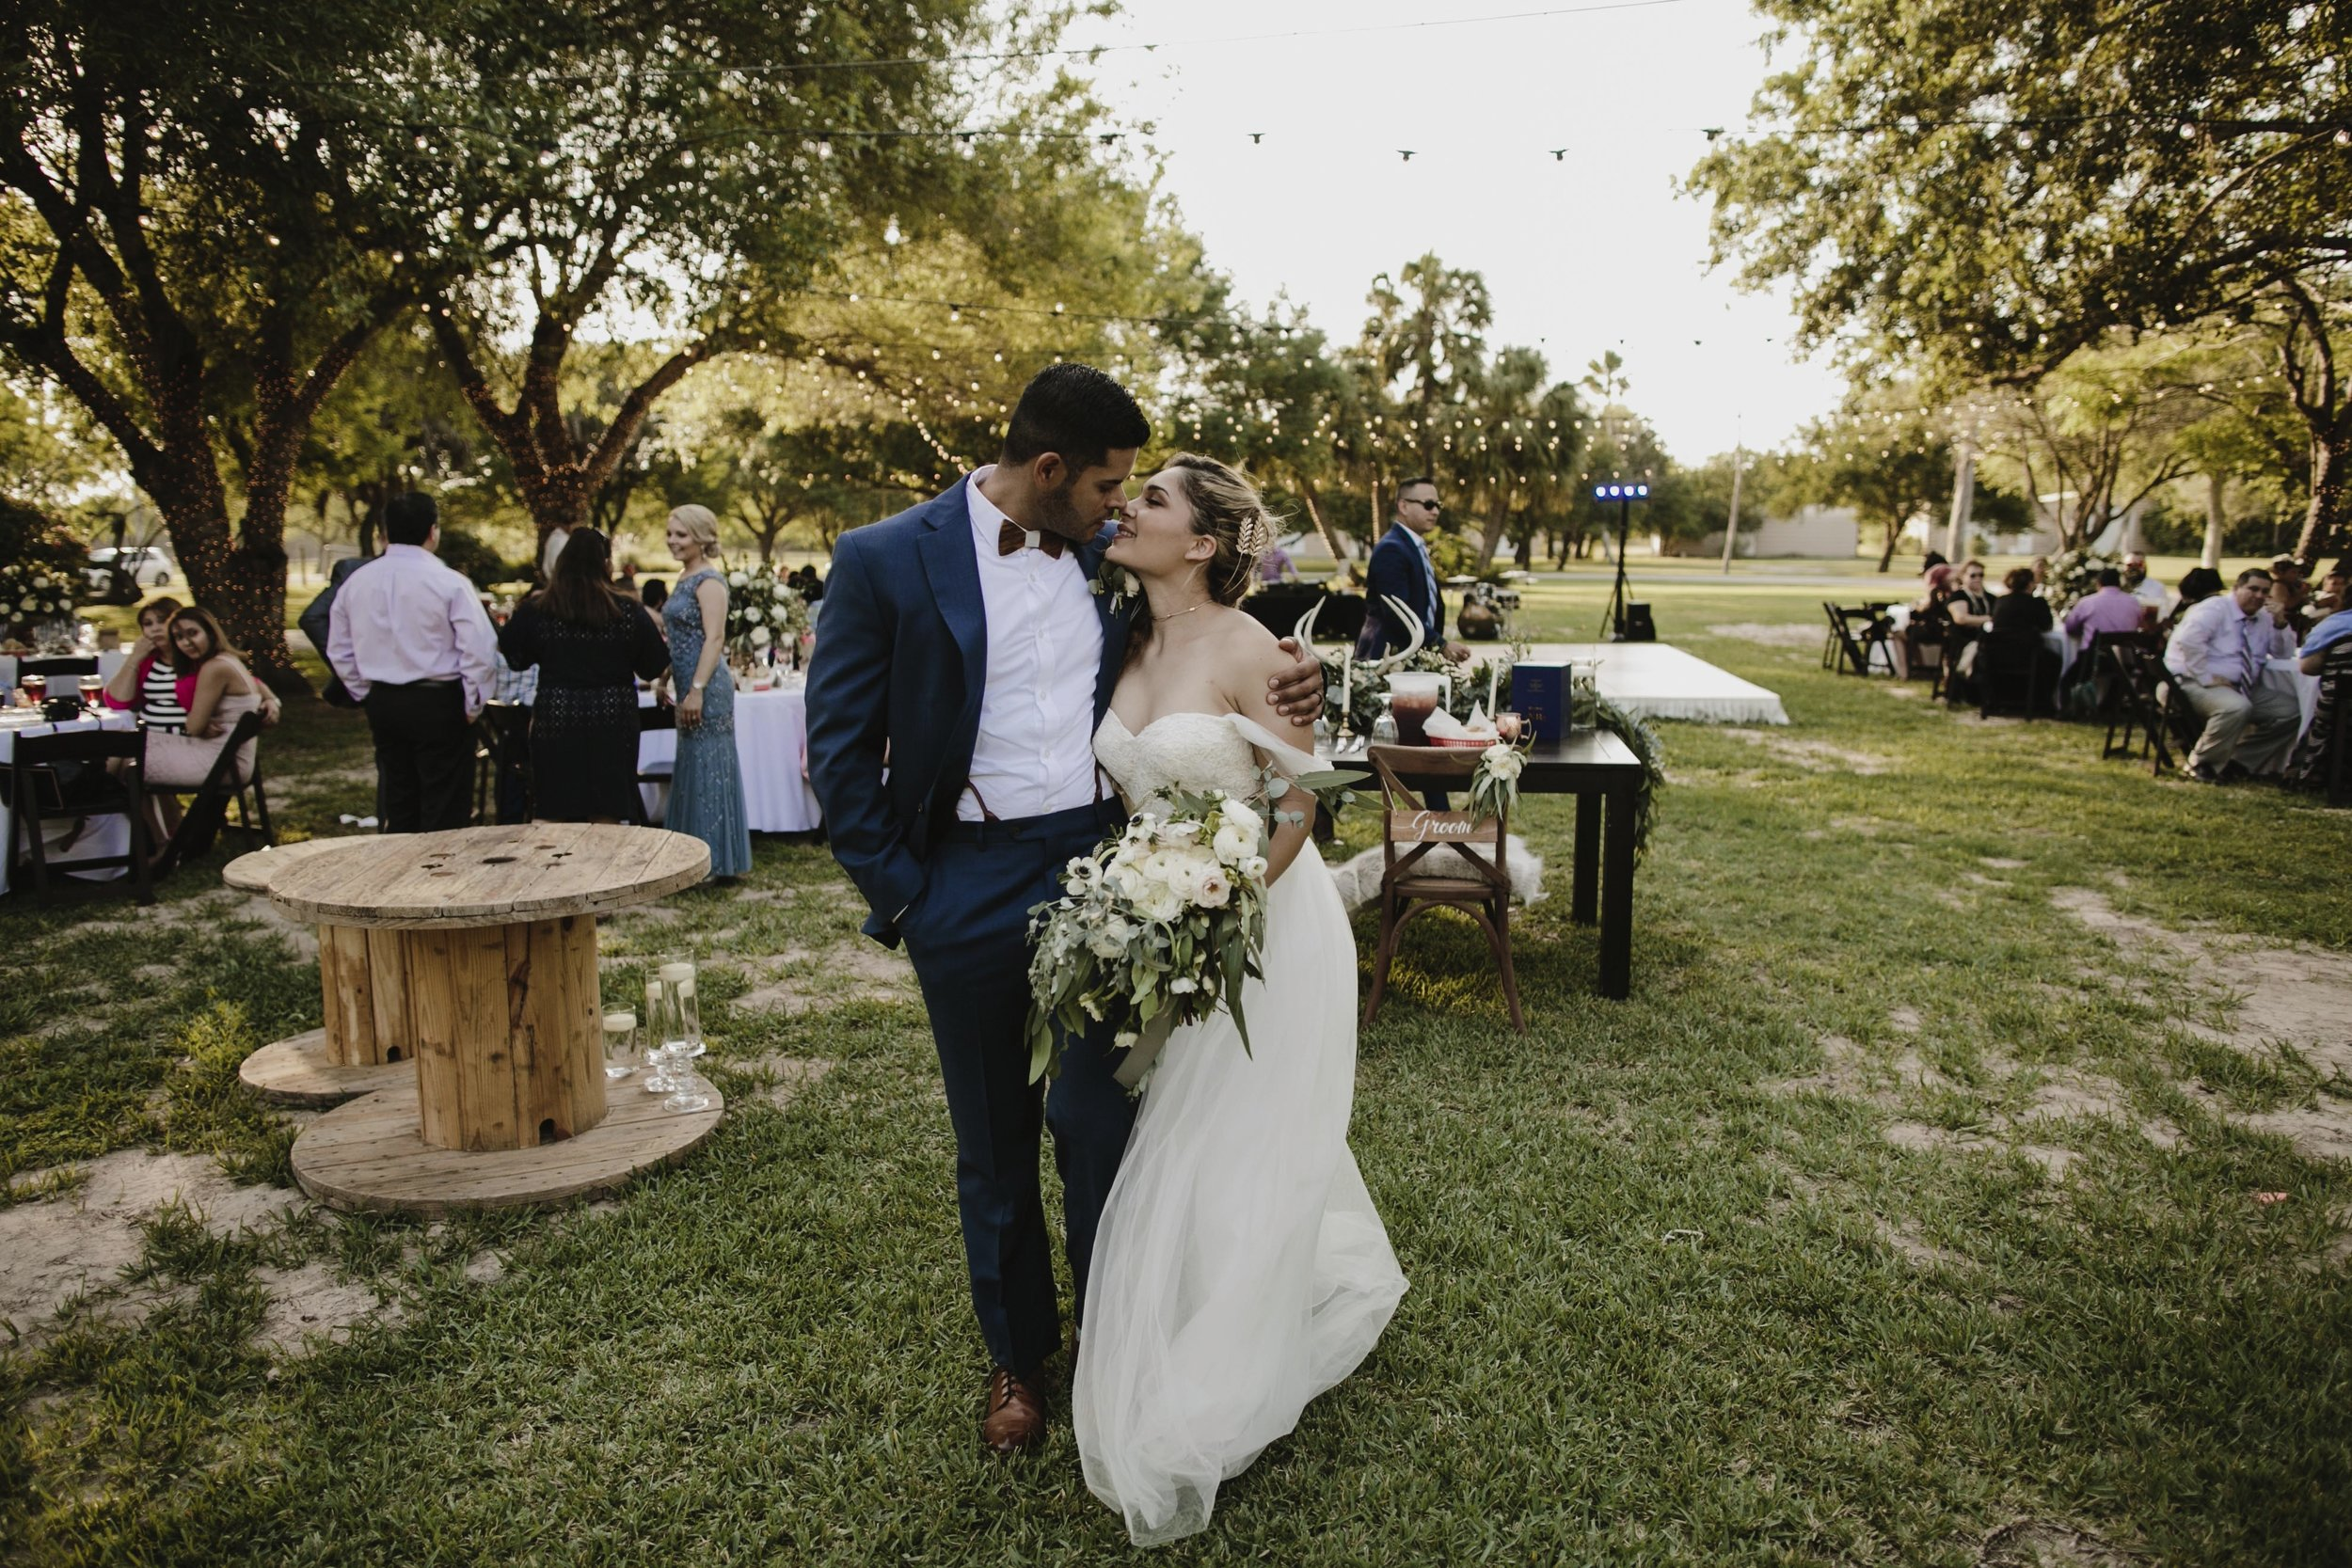 alfonso_flores_destination_wedding_photography_rancho_la_pergola_brownsville_texas49.jpg